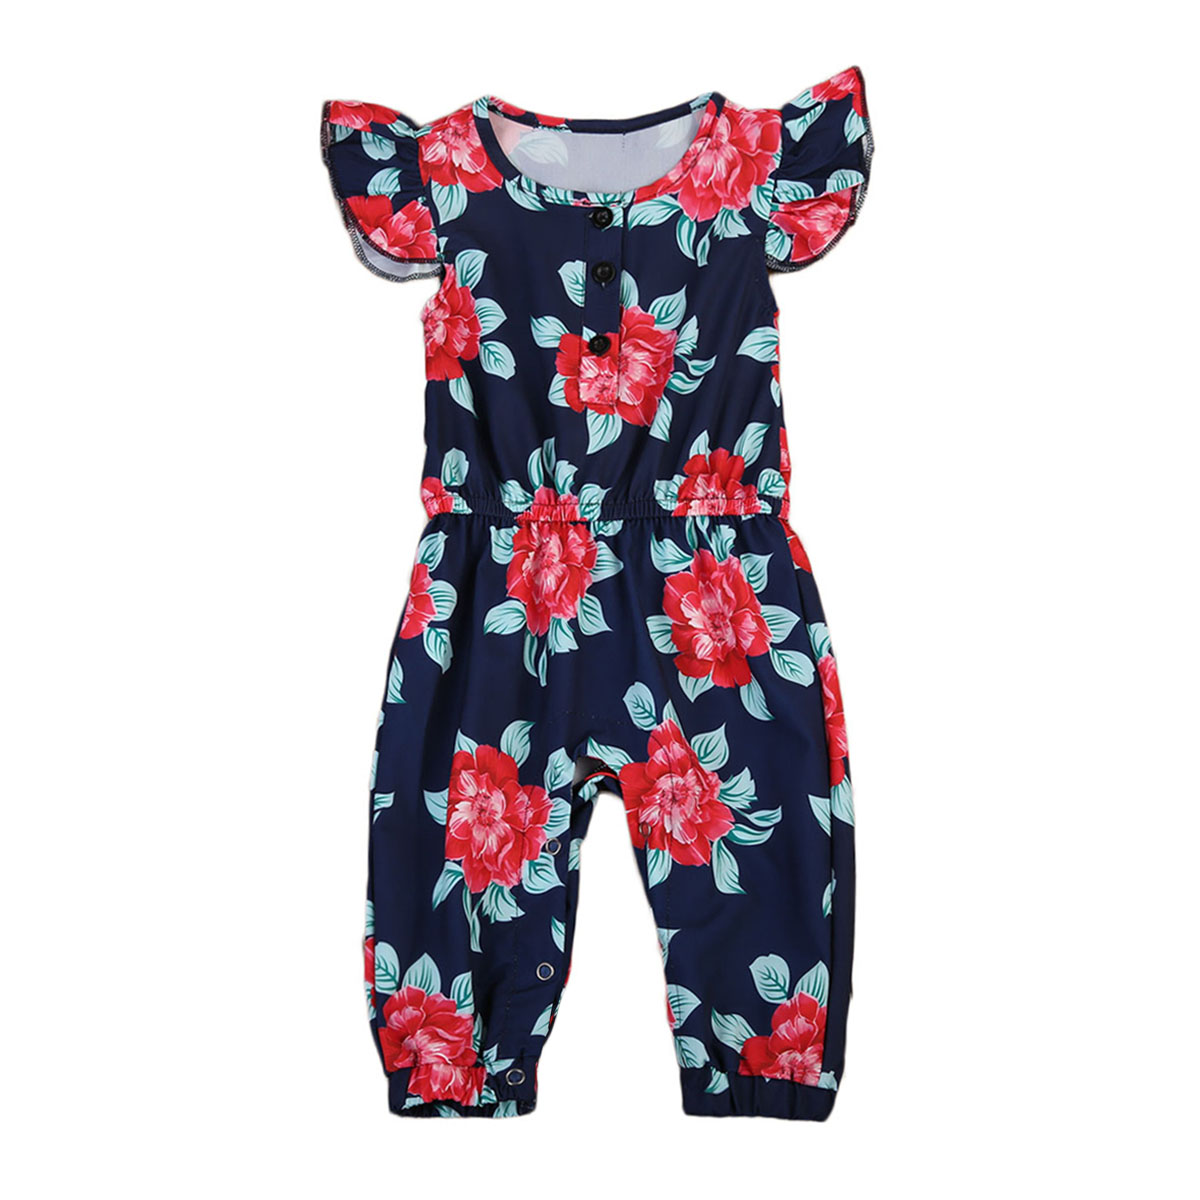 New Style Newborn Baby Girls Clothes Floral Short Sleeve Romper Jumpsuit Baby Clothing Outfits